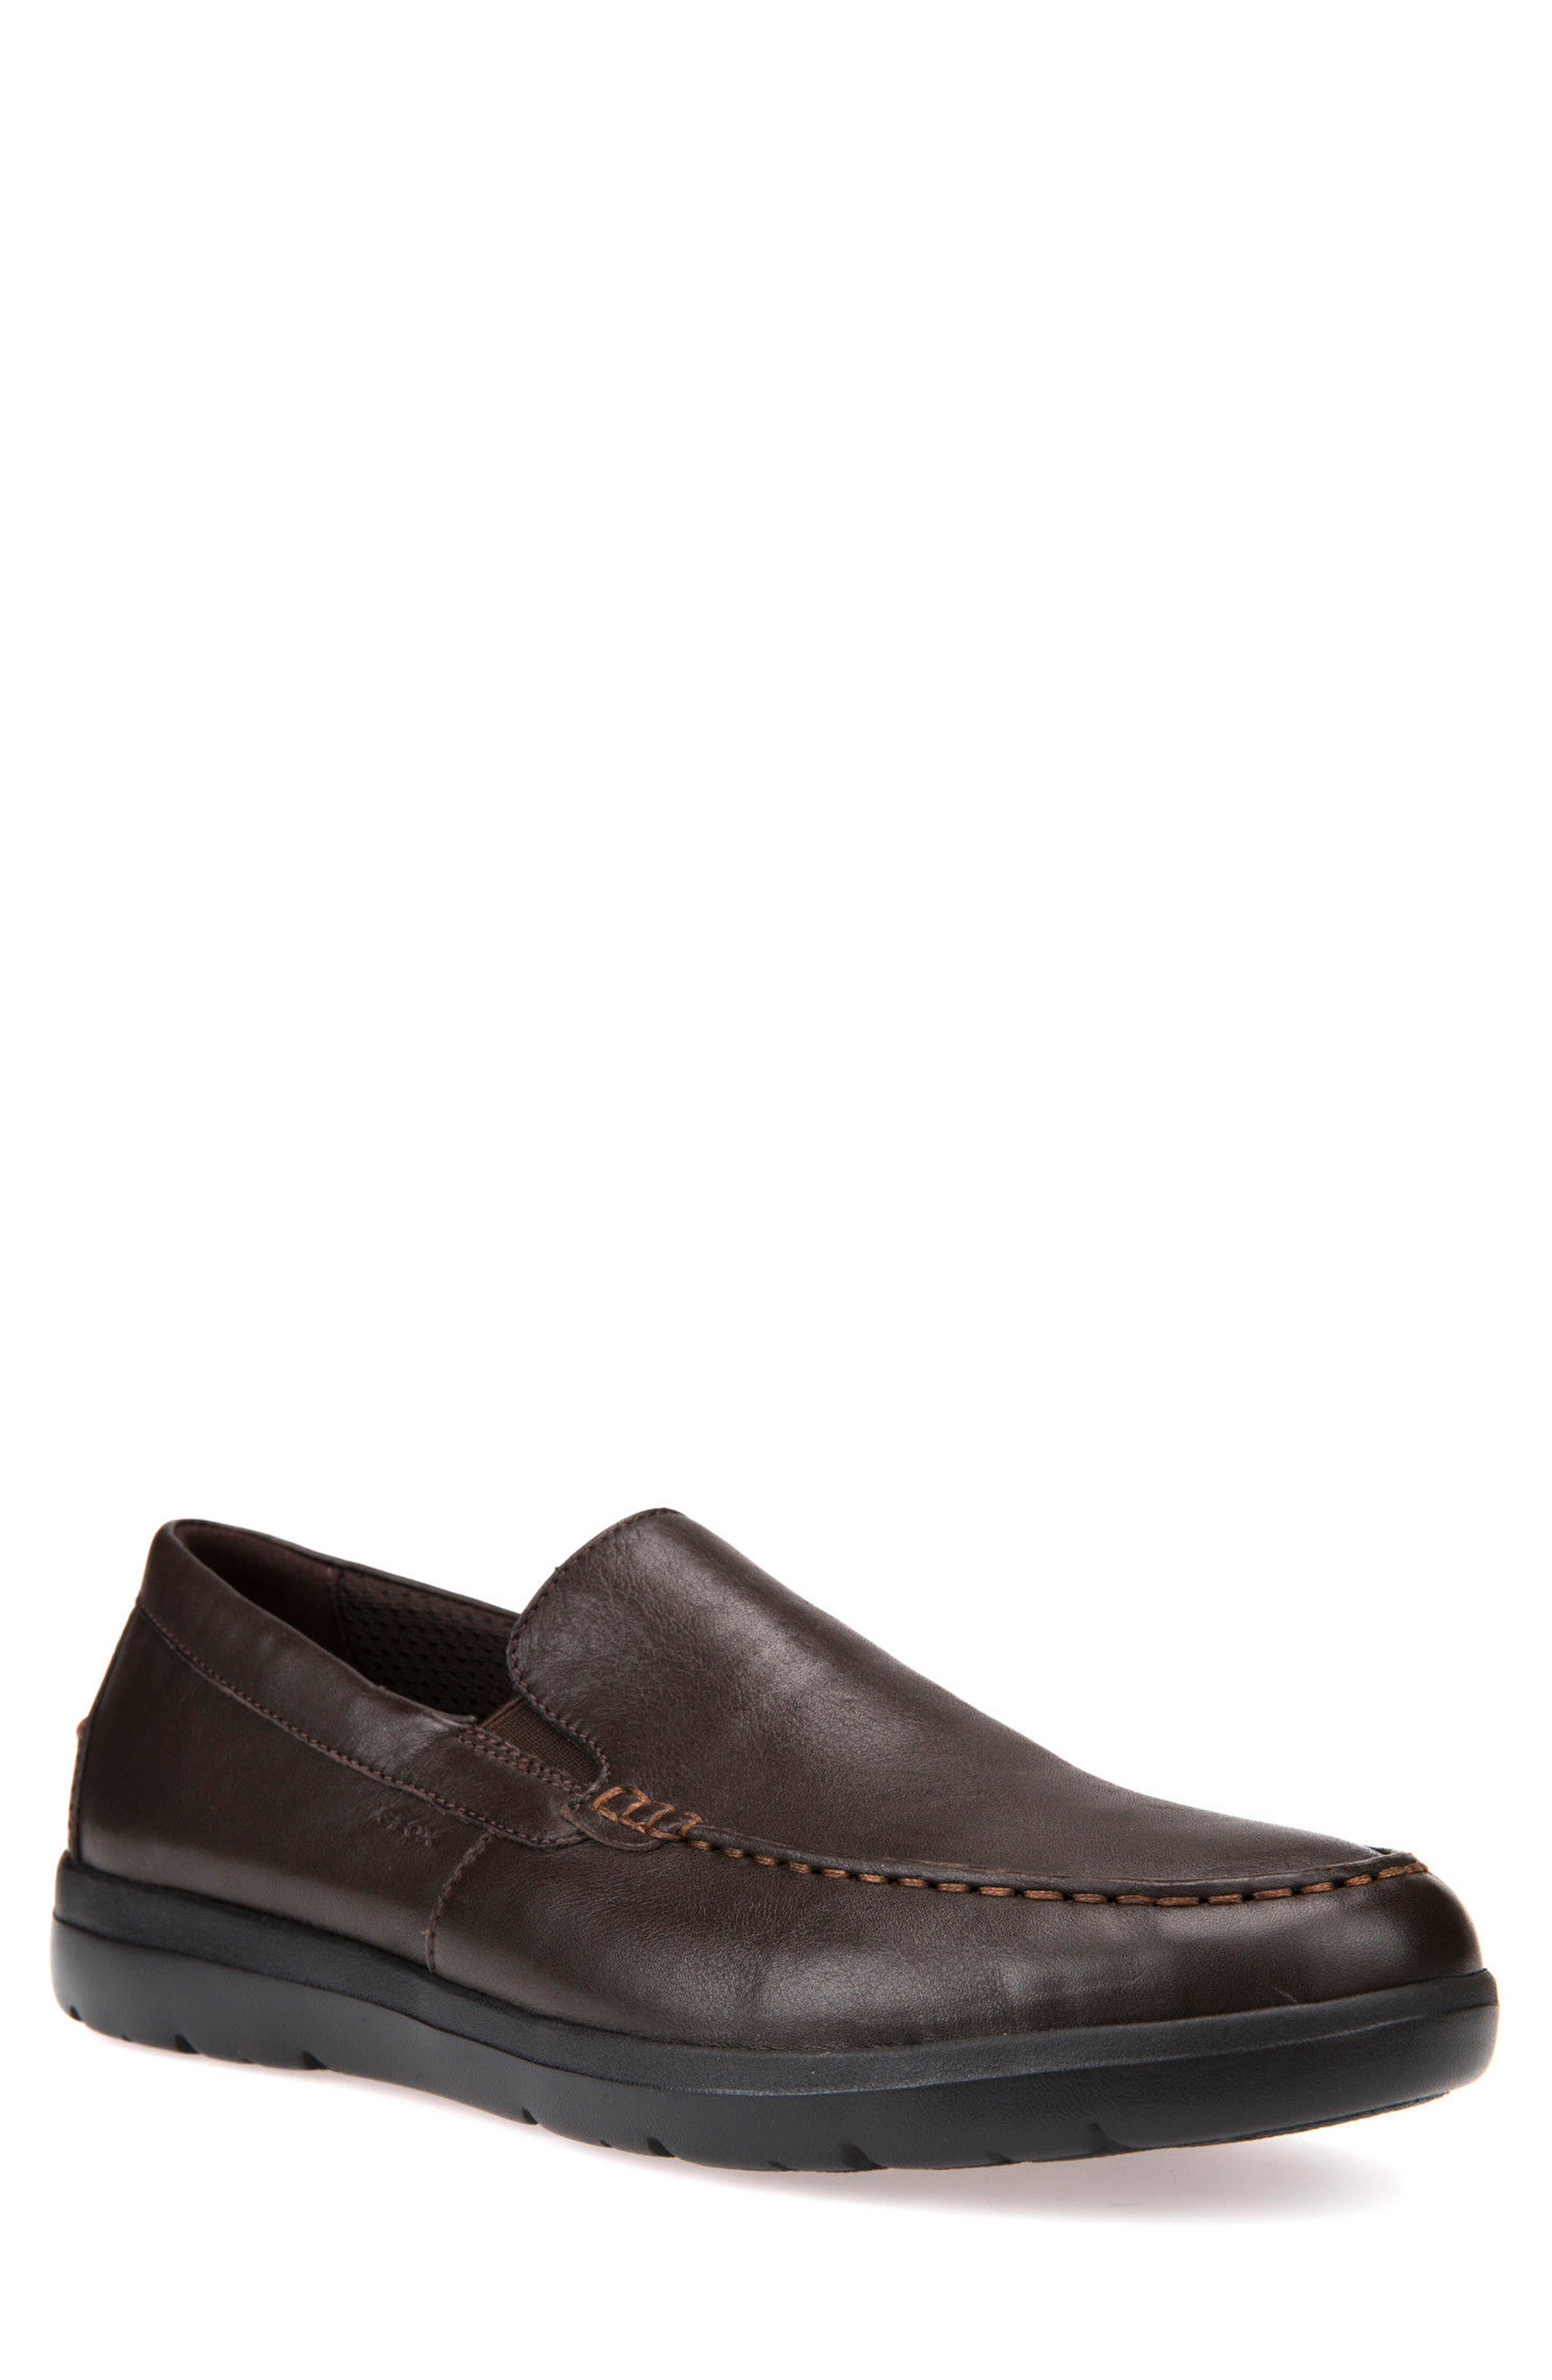 Leitan Loafer,                         Main,                         color, COFFEE